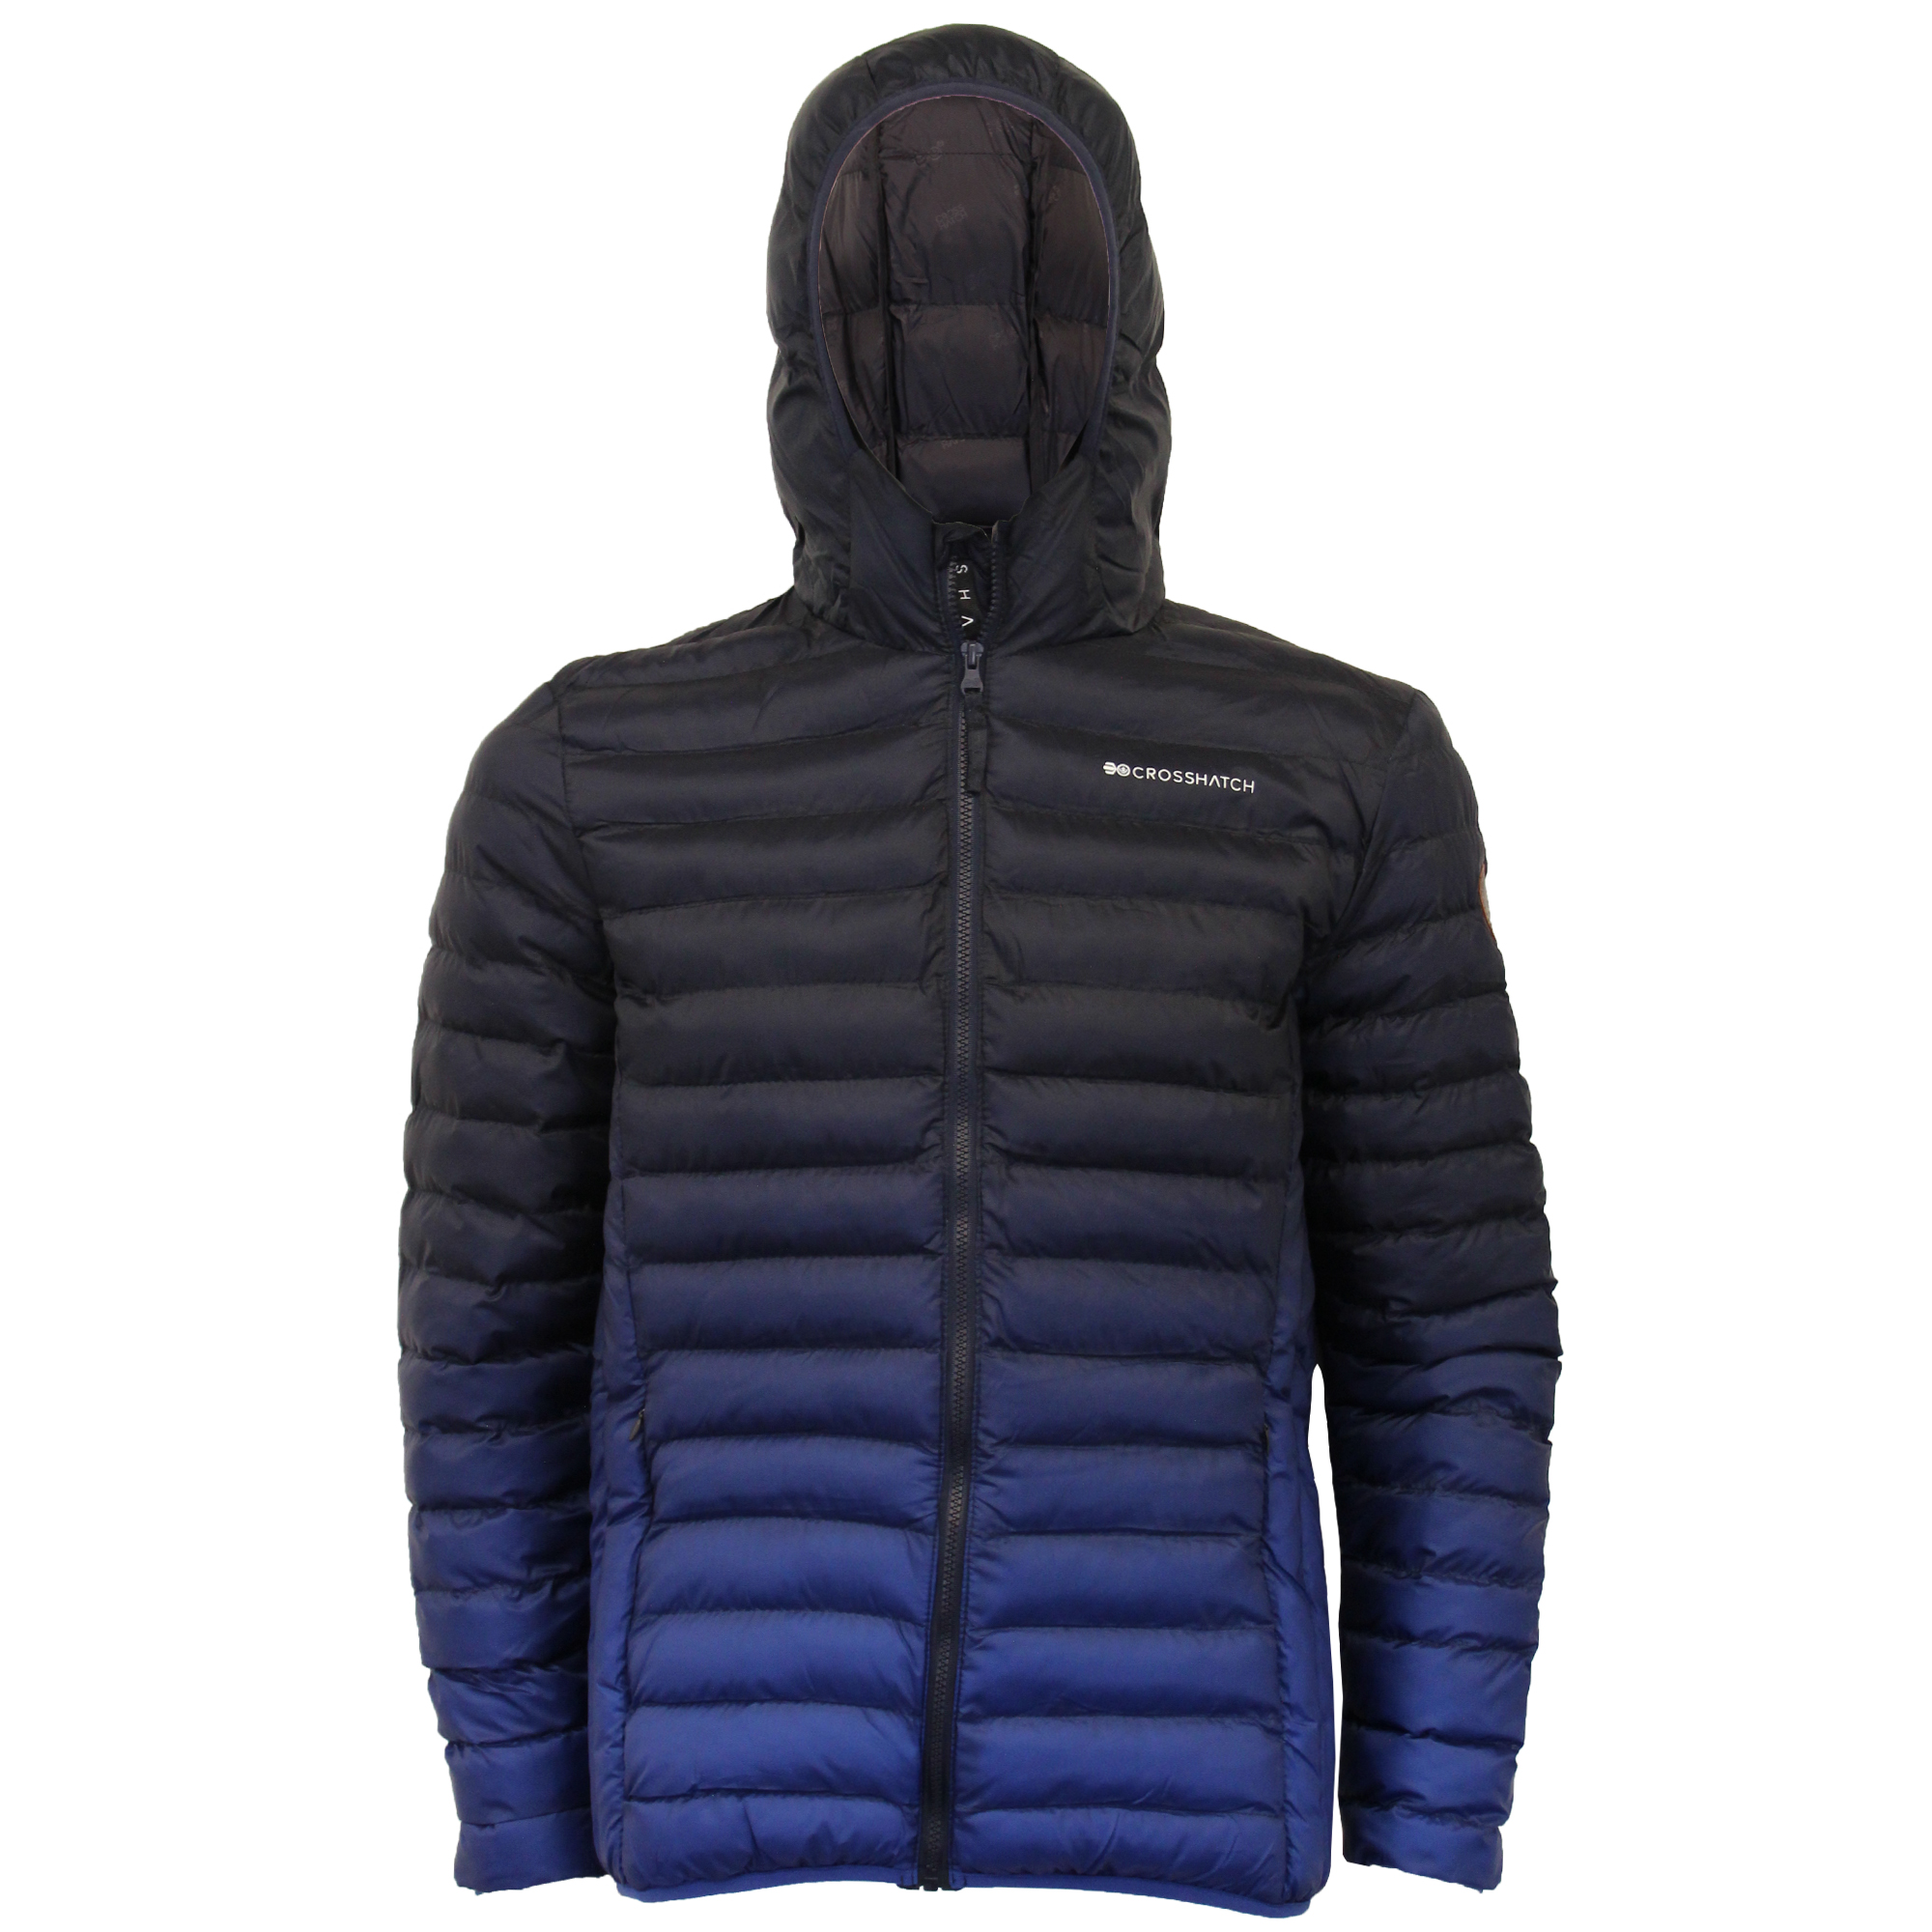 Mens-Jacket-Crosshatch-Hooded-Padded-Quilted-Two-Tone-FADEDOWN-Lined-Winter-New thumbnail 20